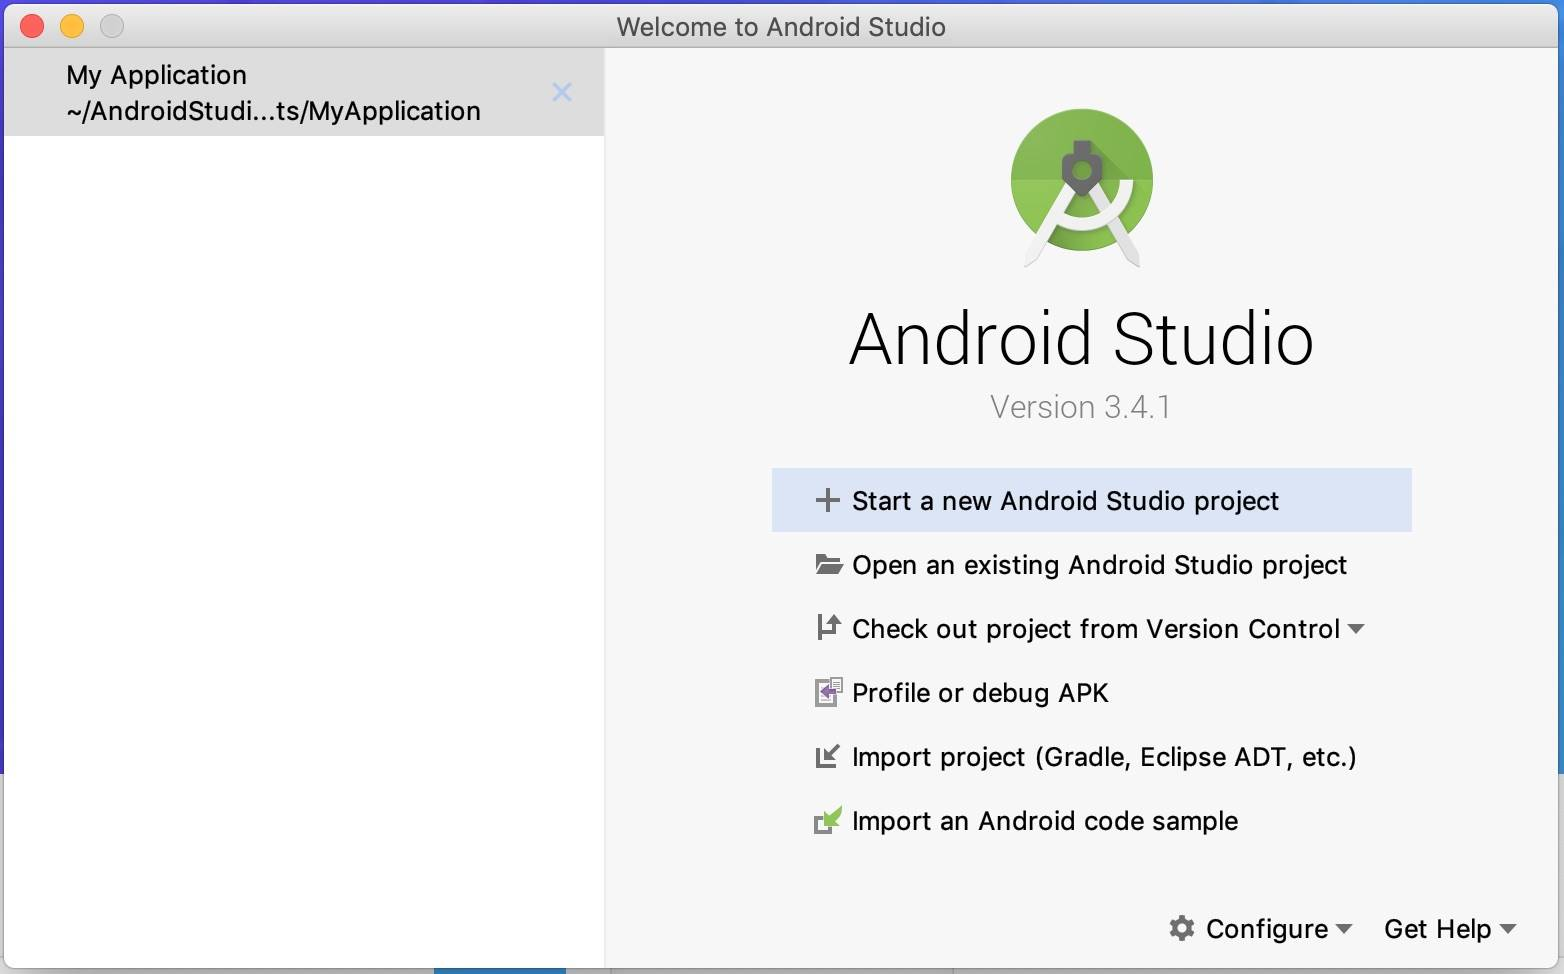 Android studio project - Welcome